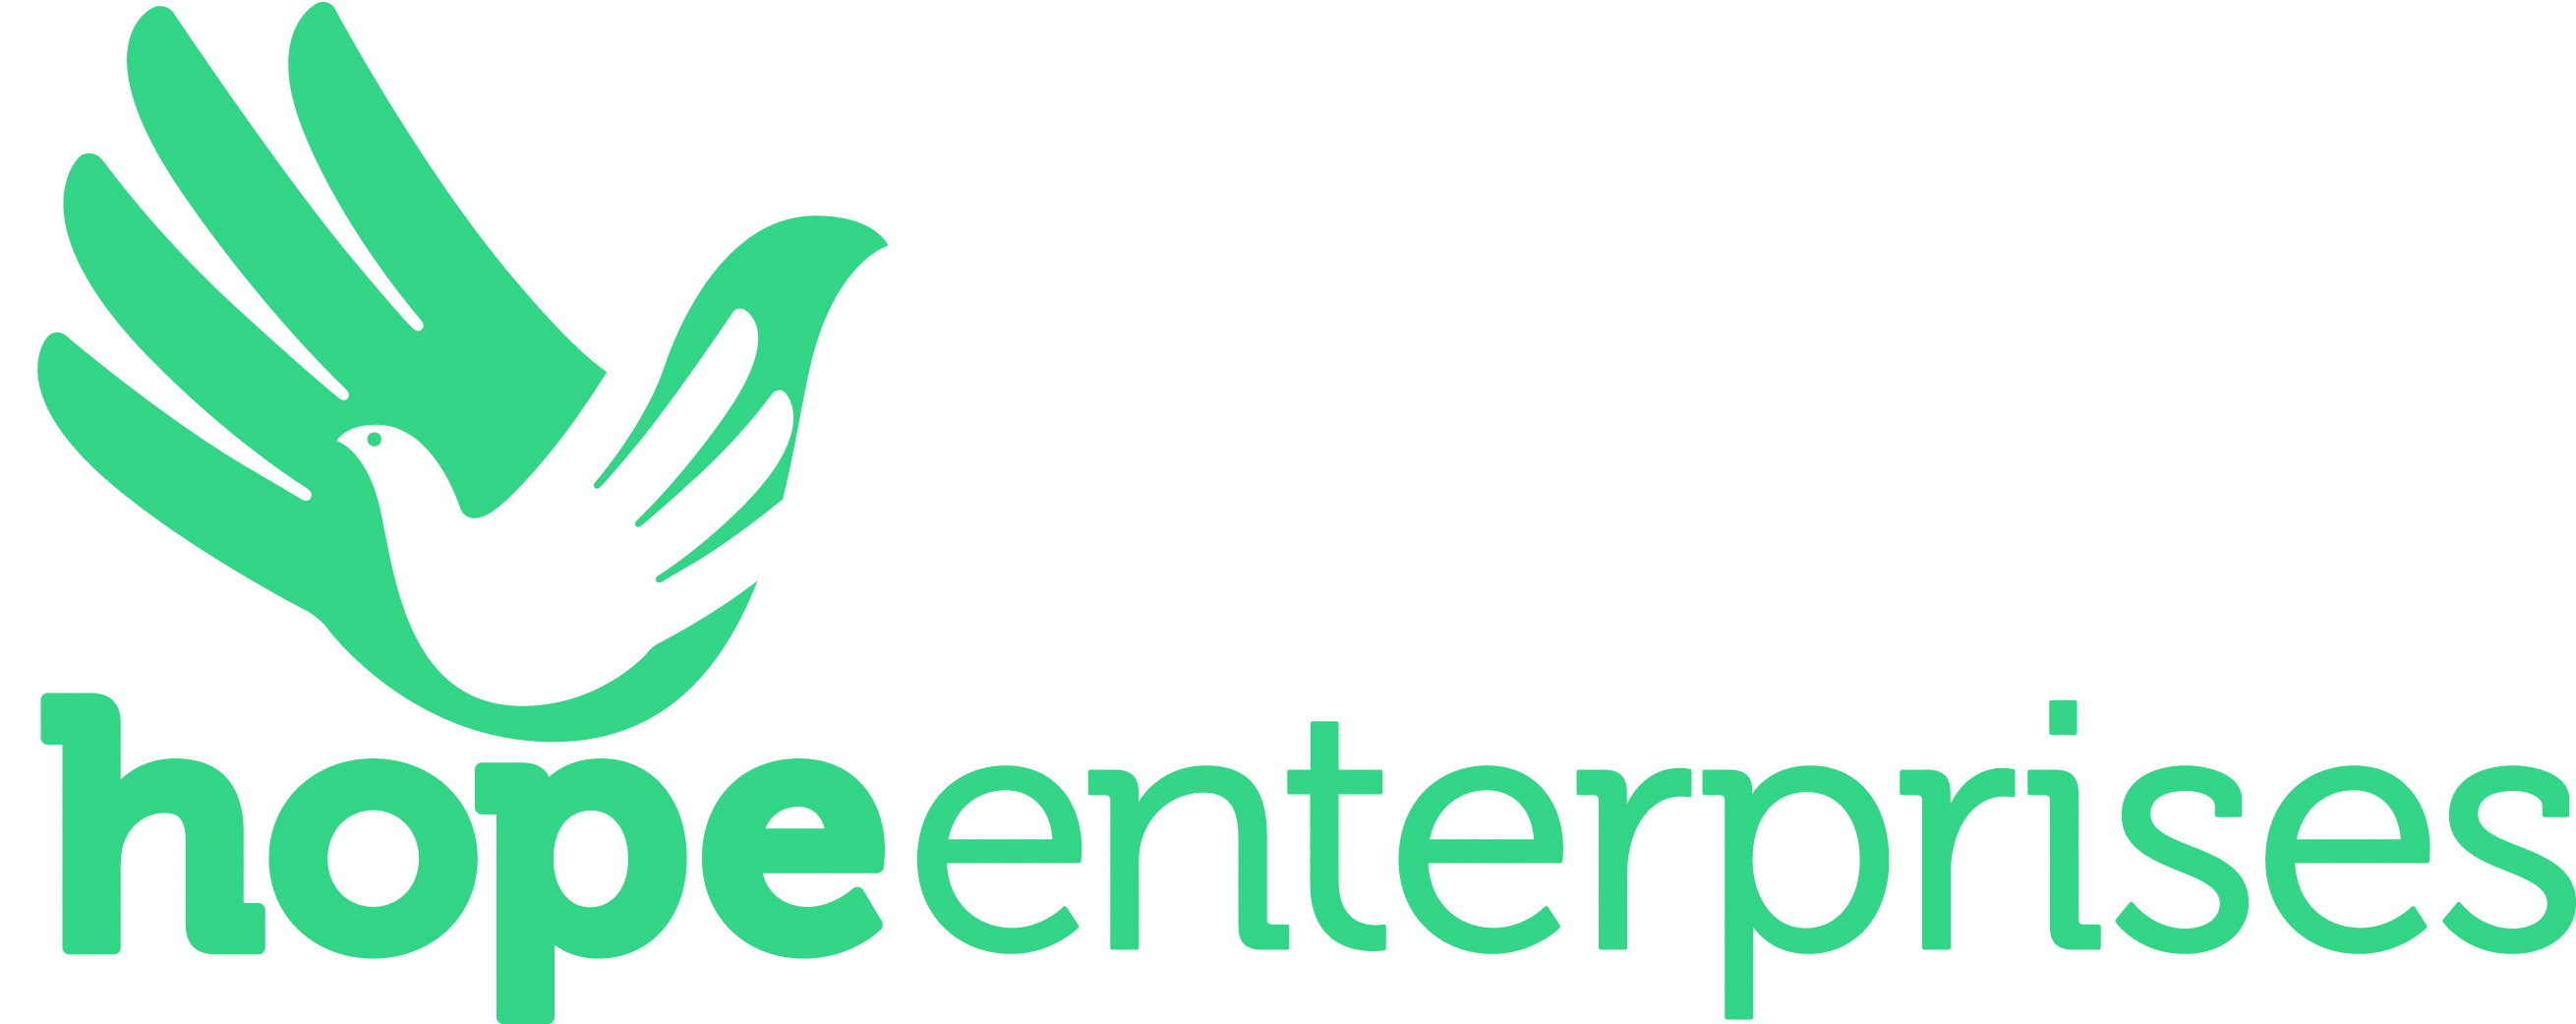 Hope Enterprises Logo CMYK.jpg